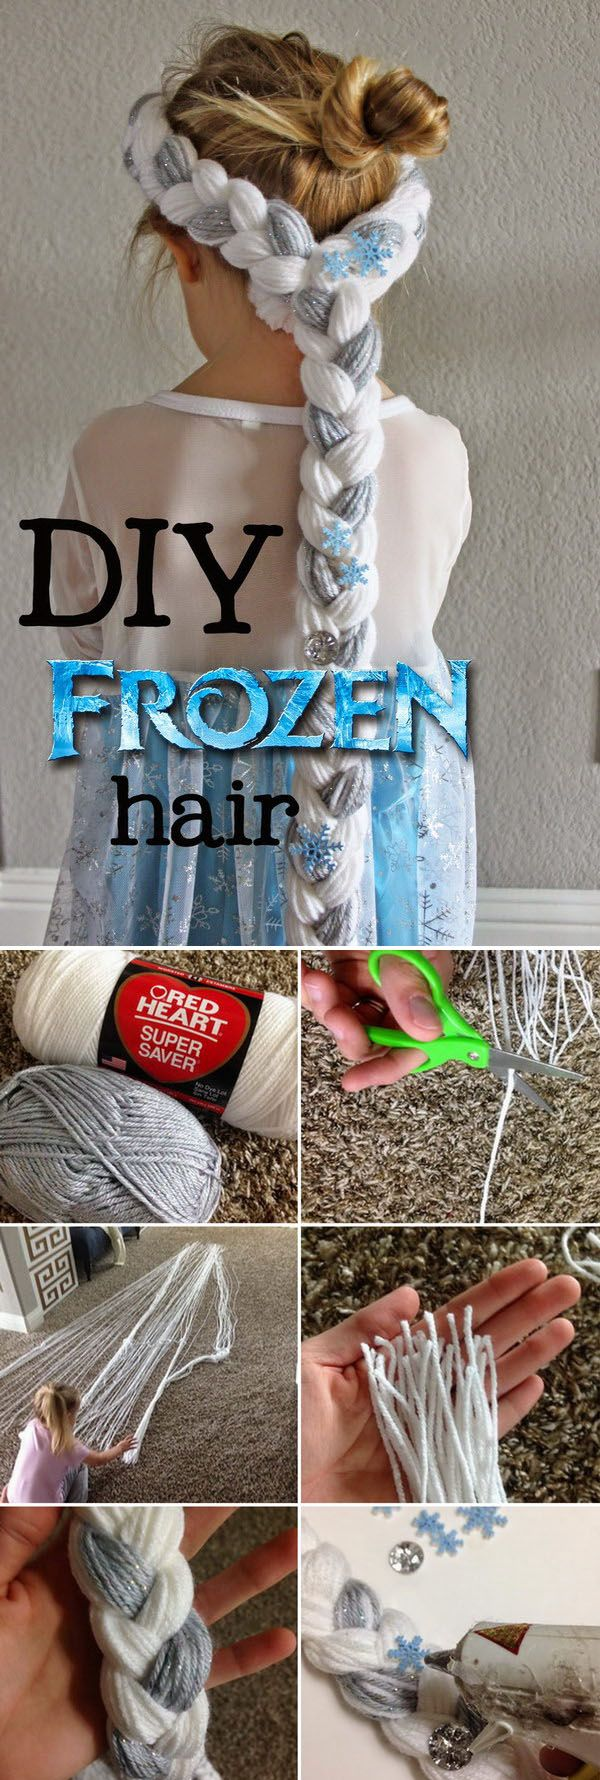 DIY Hair for Frozen Party. This fun project was so simple and it takes less than an hour to make!